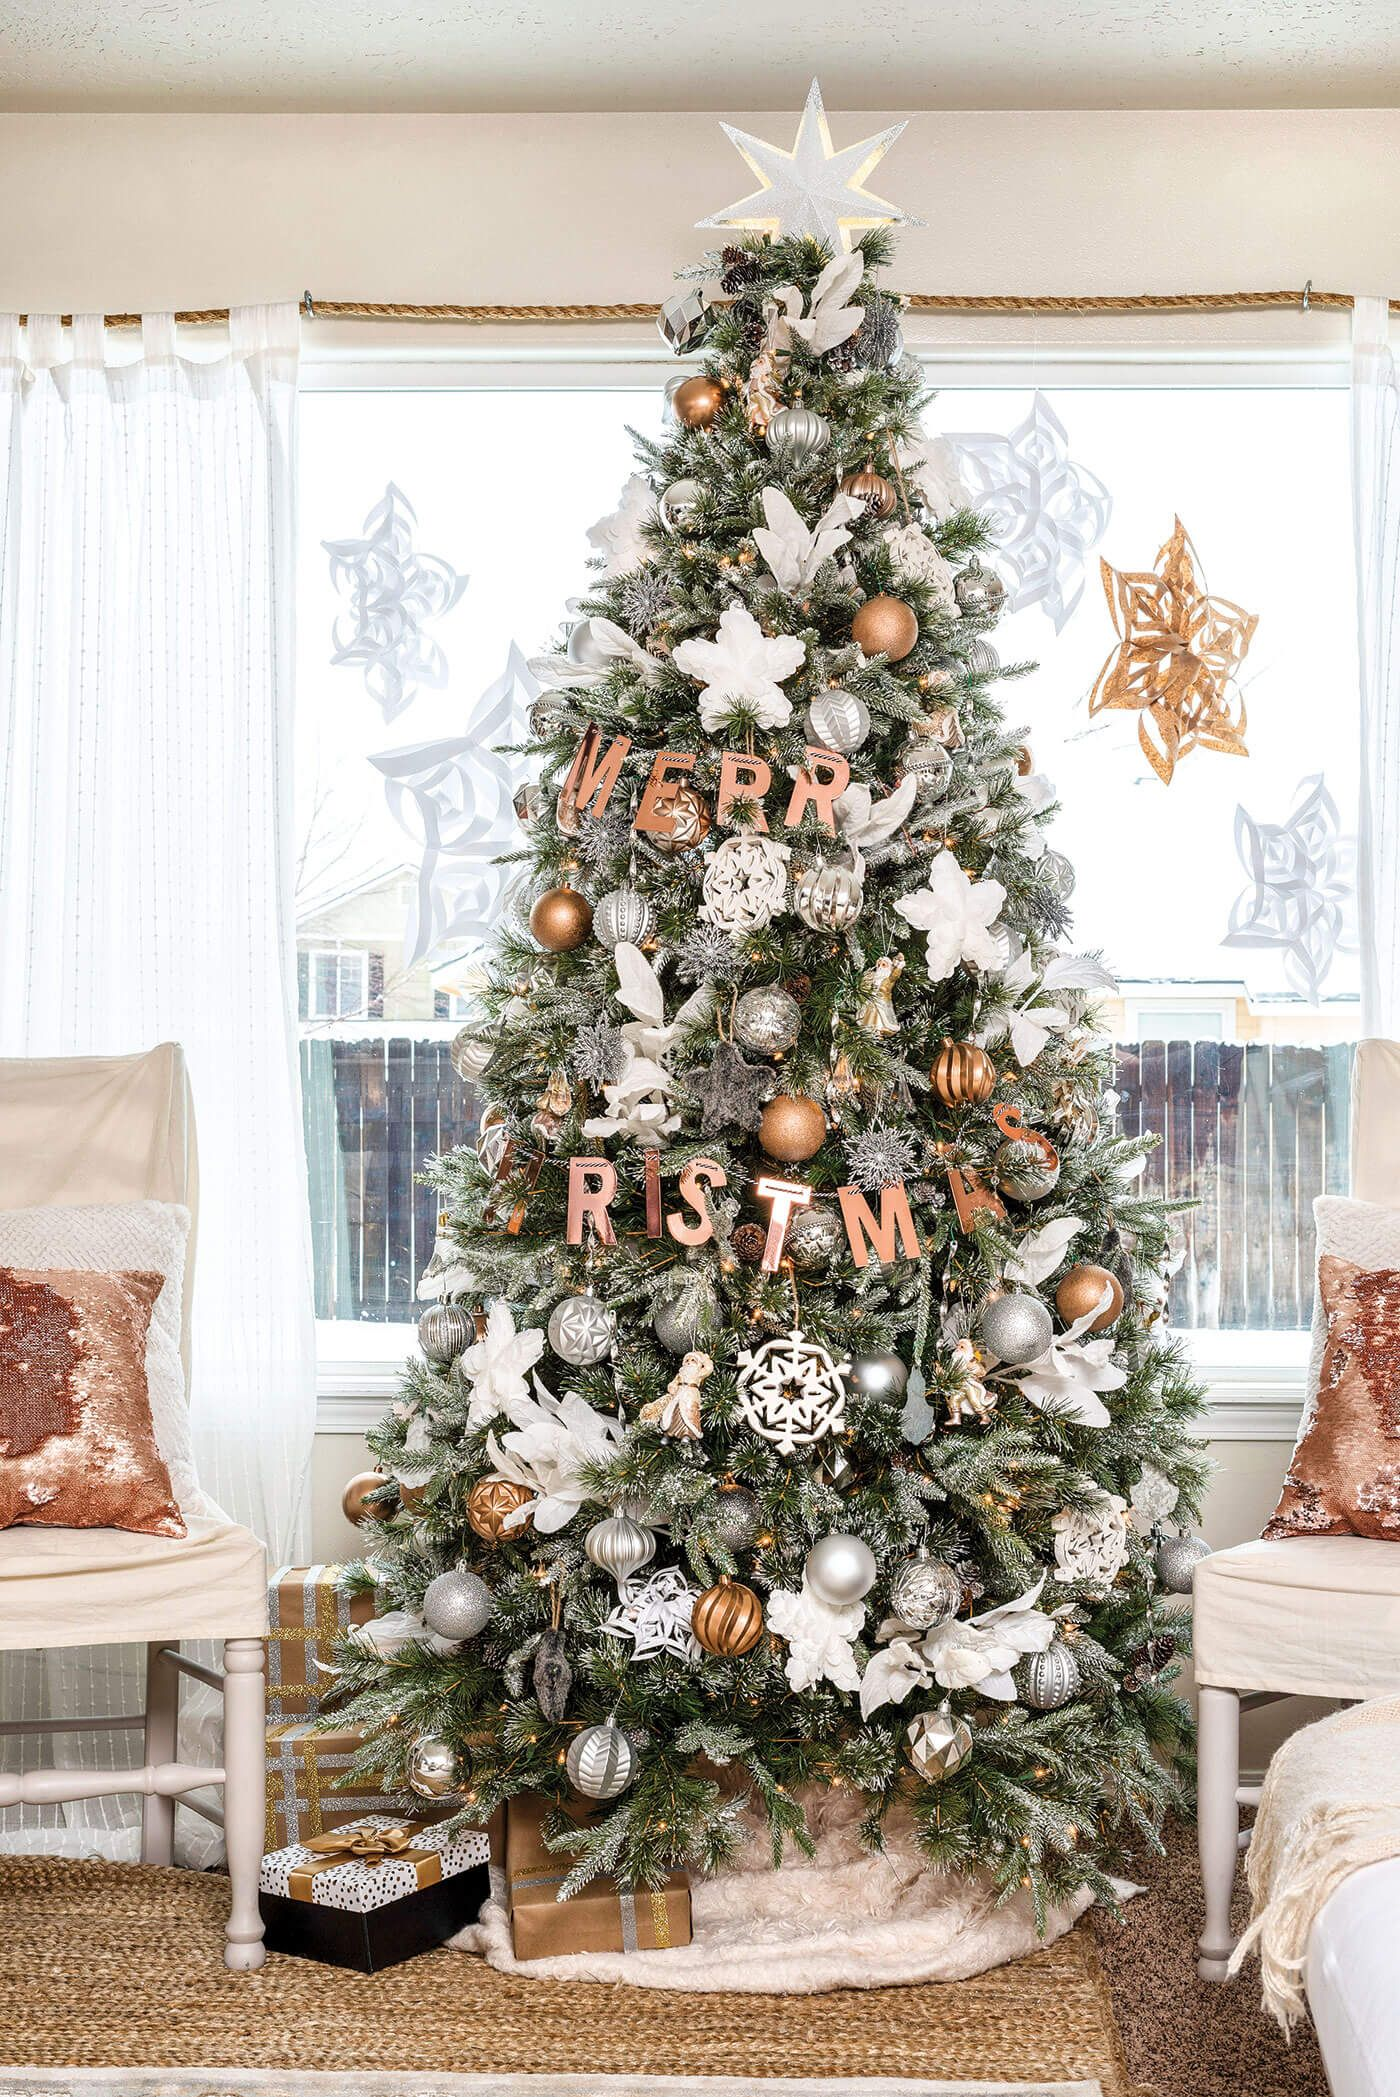 Tour A Christmas Home Full Of Cozy Farmhouse Decor And Neutral Metallic Christmas Touches Find Farmhouse Christmas Tree Christmas Color Palette Christmas Tree